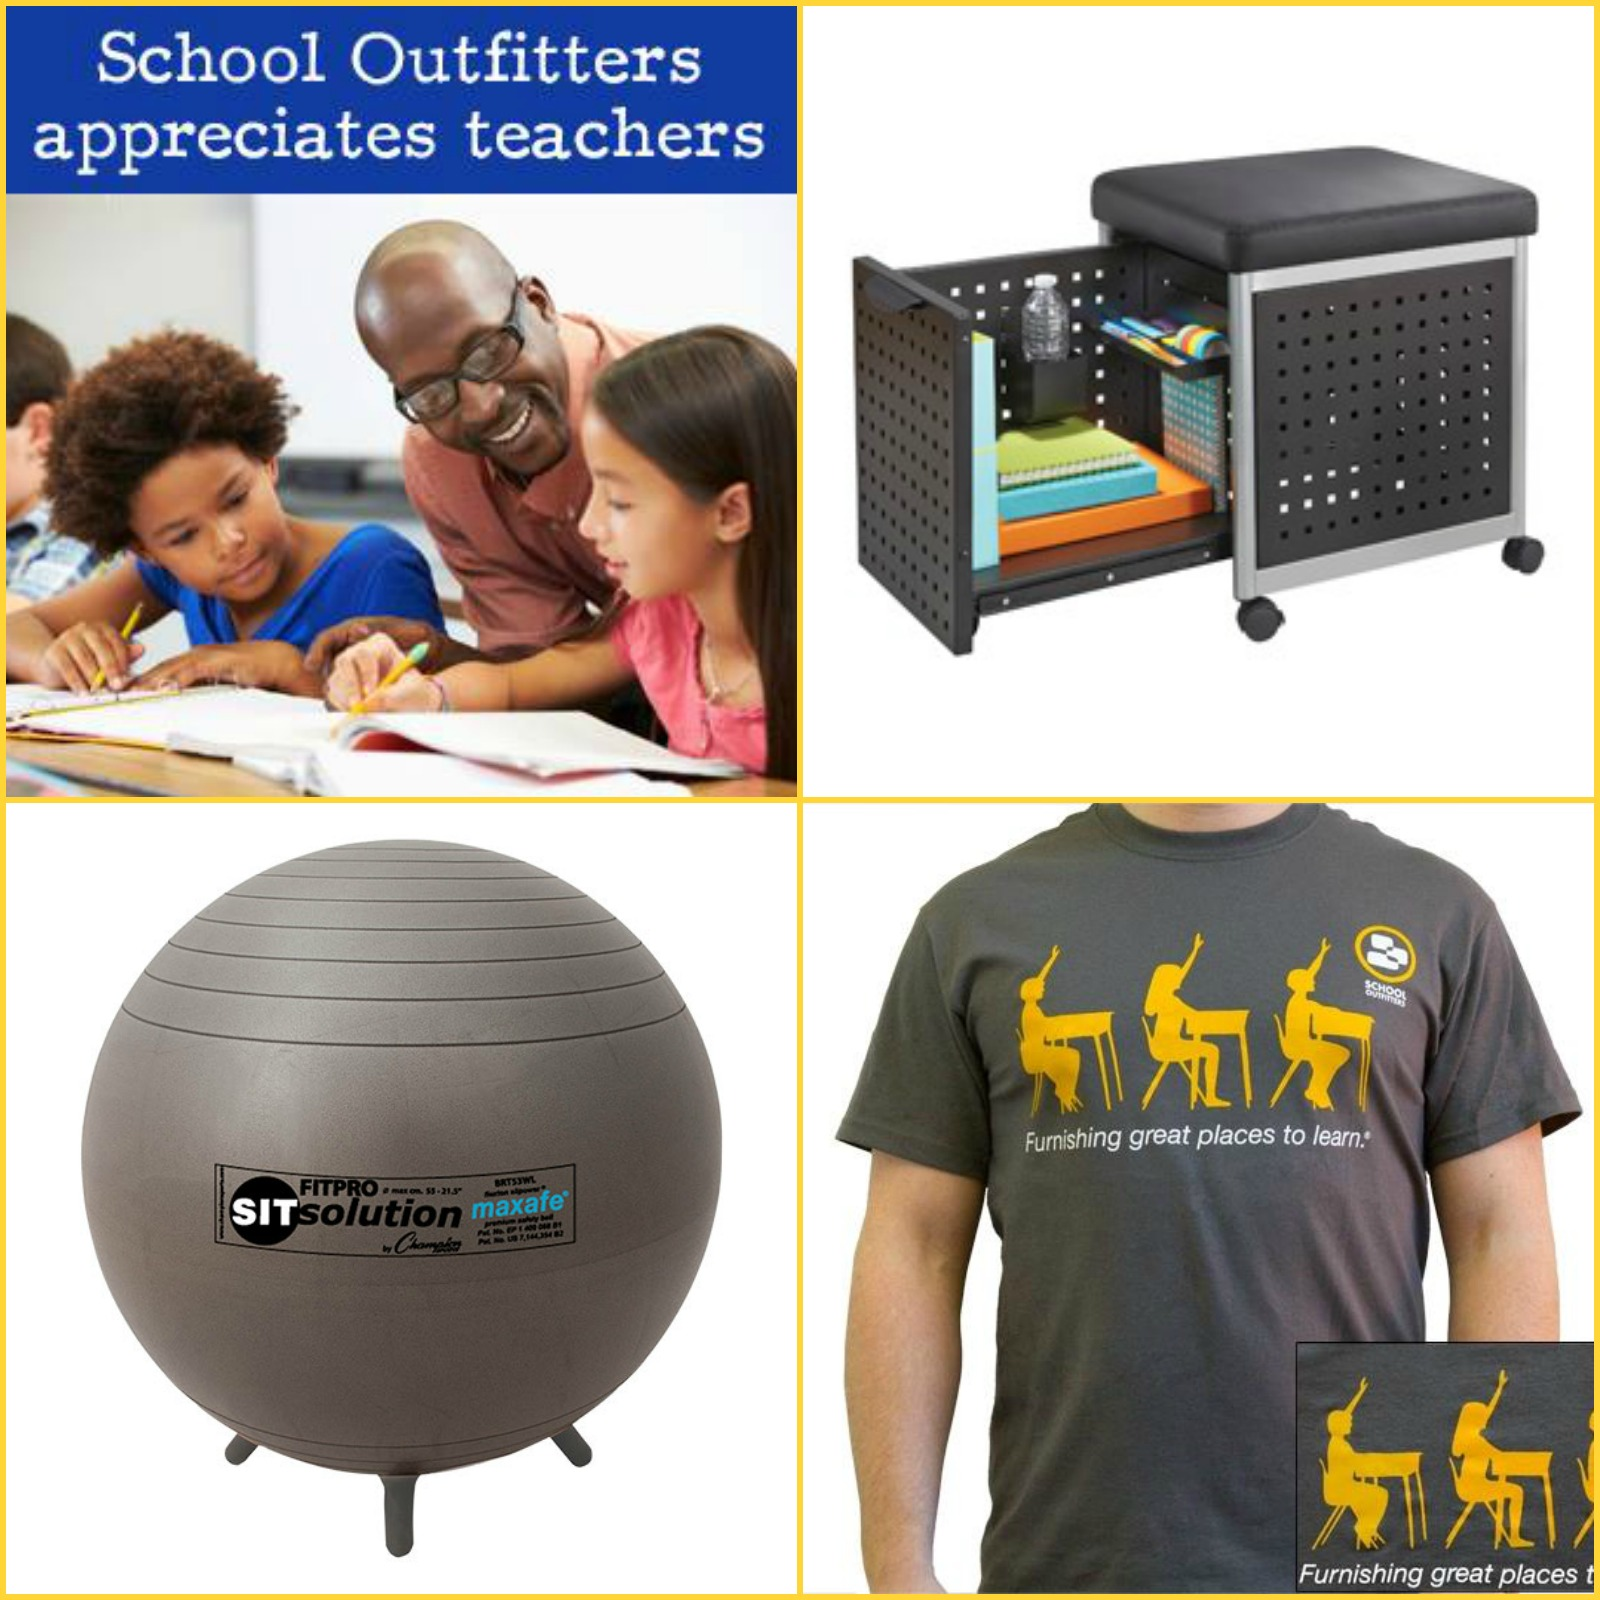 SCHOOLHOUSE OUTFITTERS LLC APRIL Group - Audio Visual Equipment and Accessories Contractor Schoolhouse Outfitters LLC dba School Outfitters.